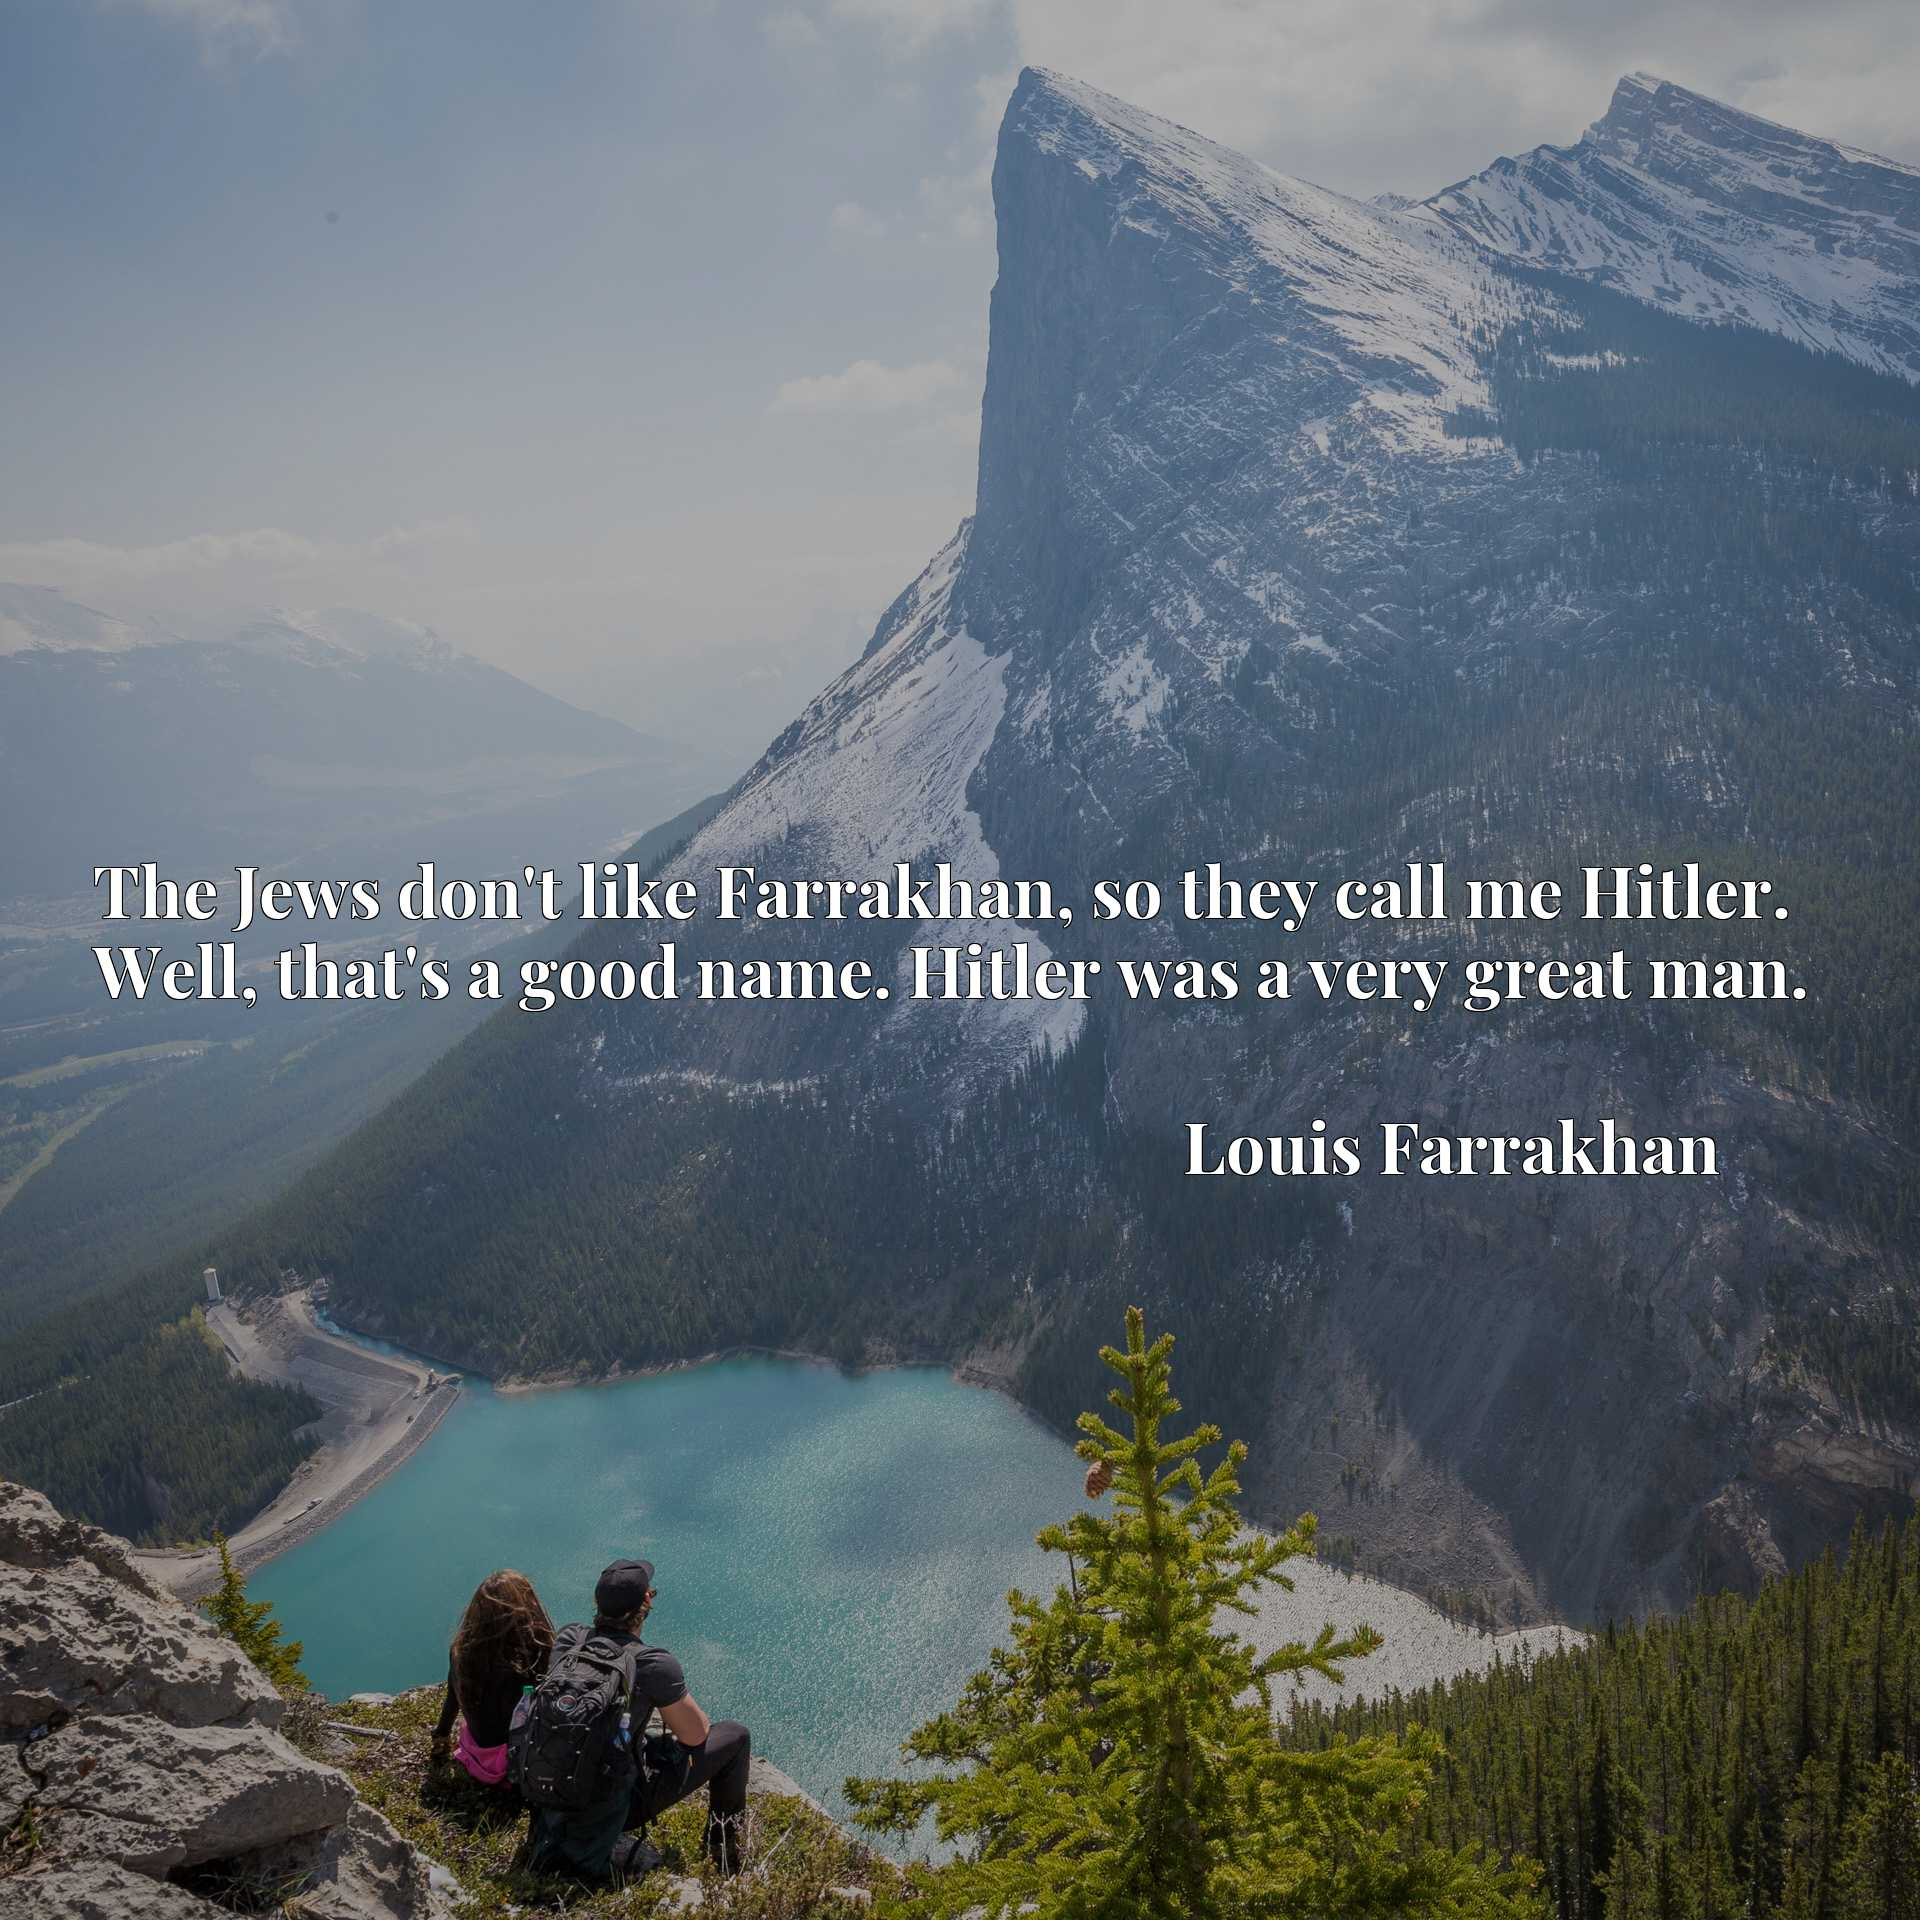 The Jews don't like Farrakhan, so they call me Hitler. Well, that's a good name. Hitler was a very great man.